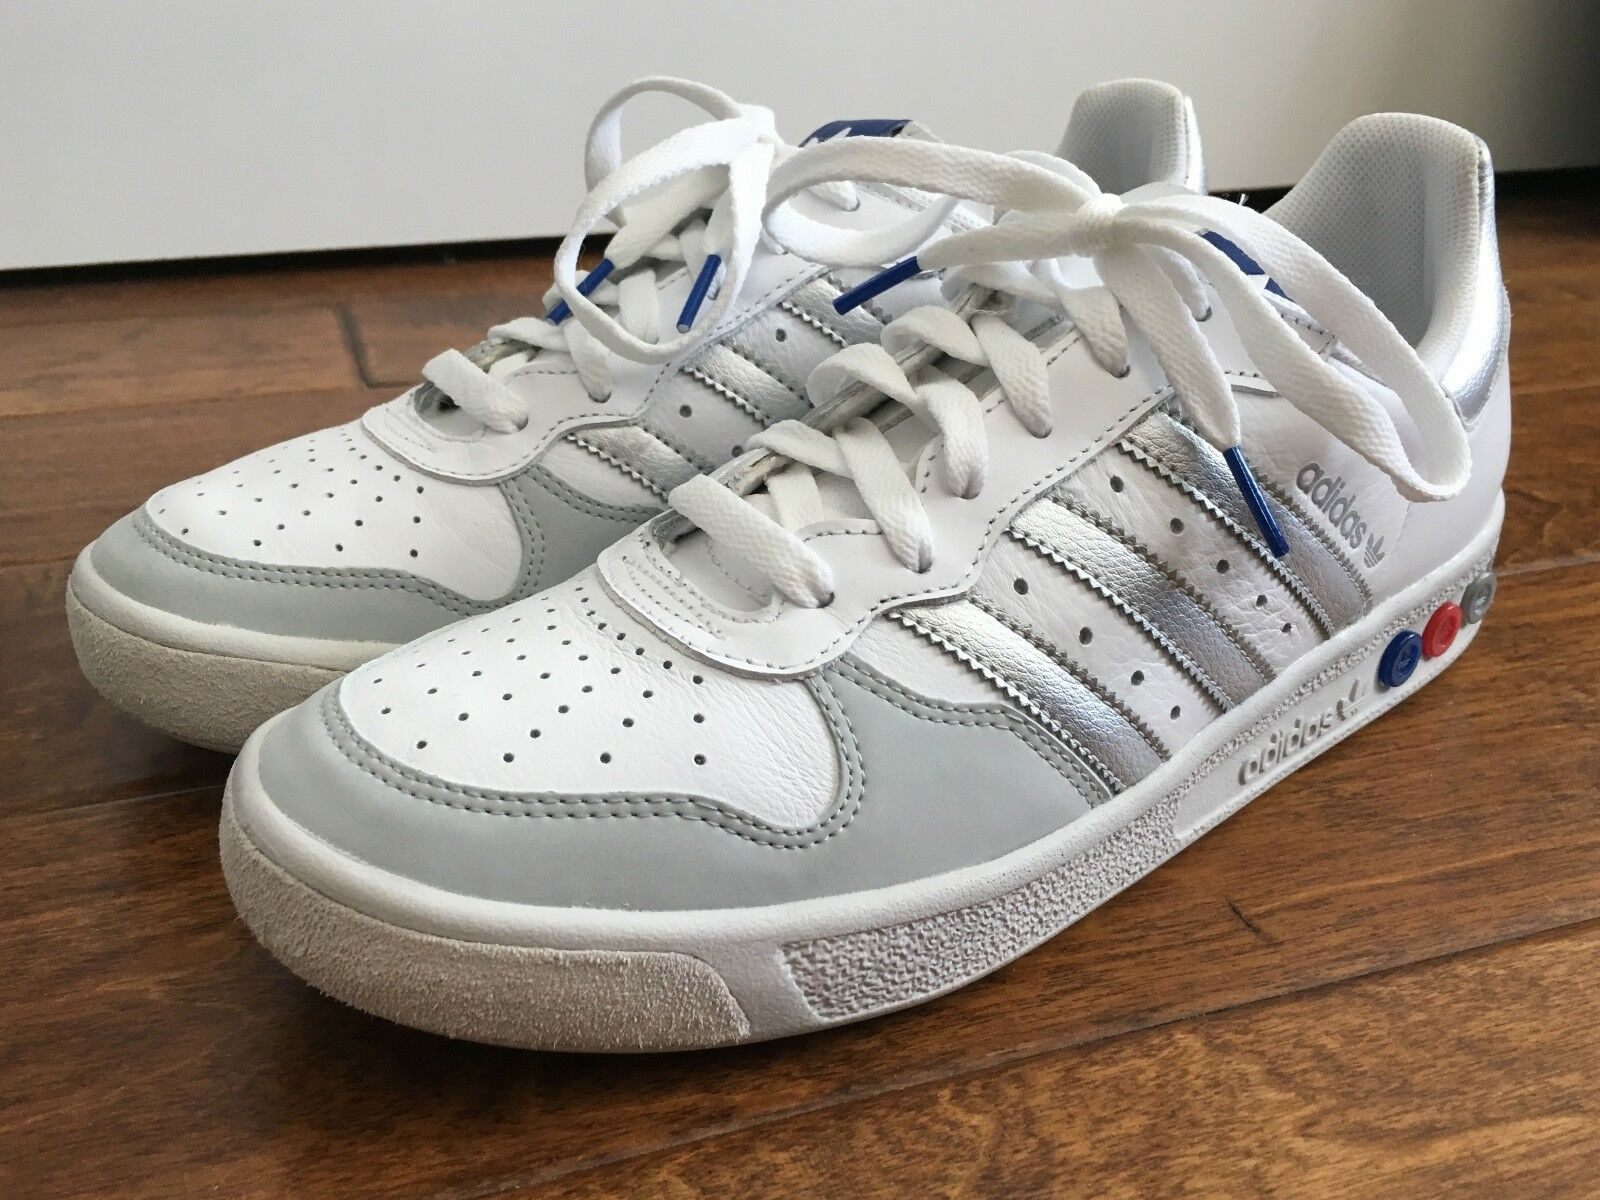 Adidas originals - grand slam - tennis - g46821 - - - mens größe 10 - new in box 9eb826